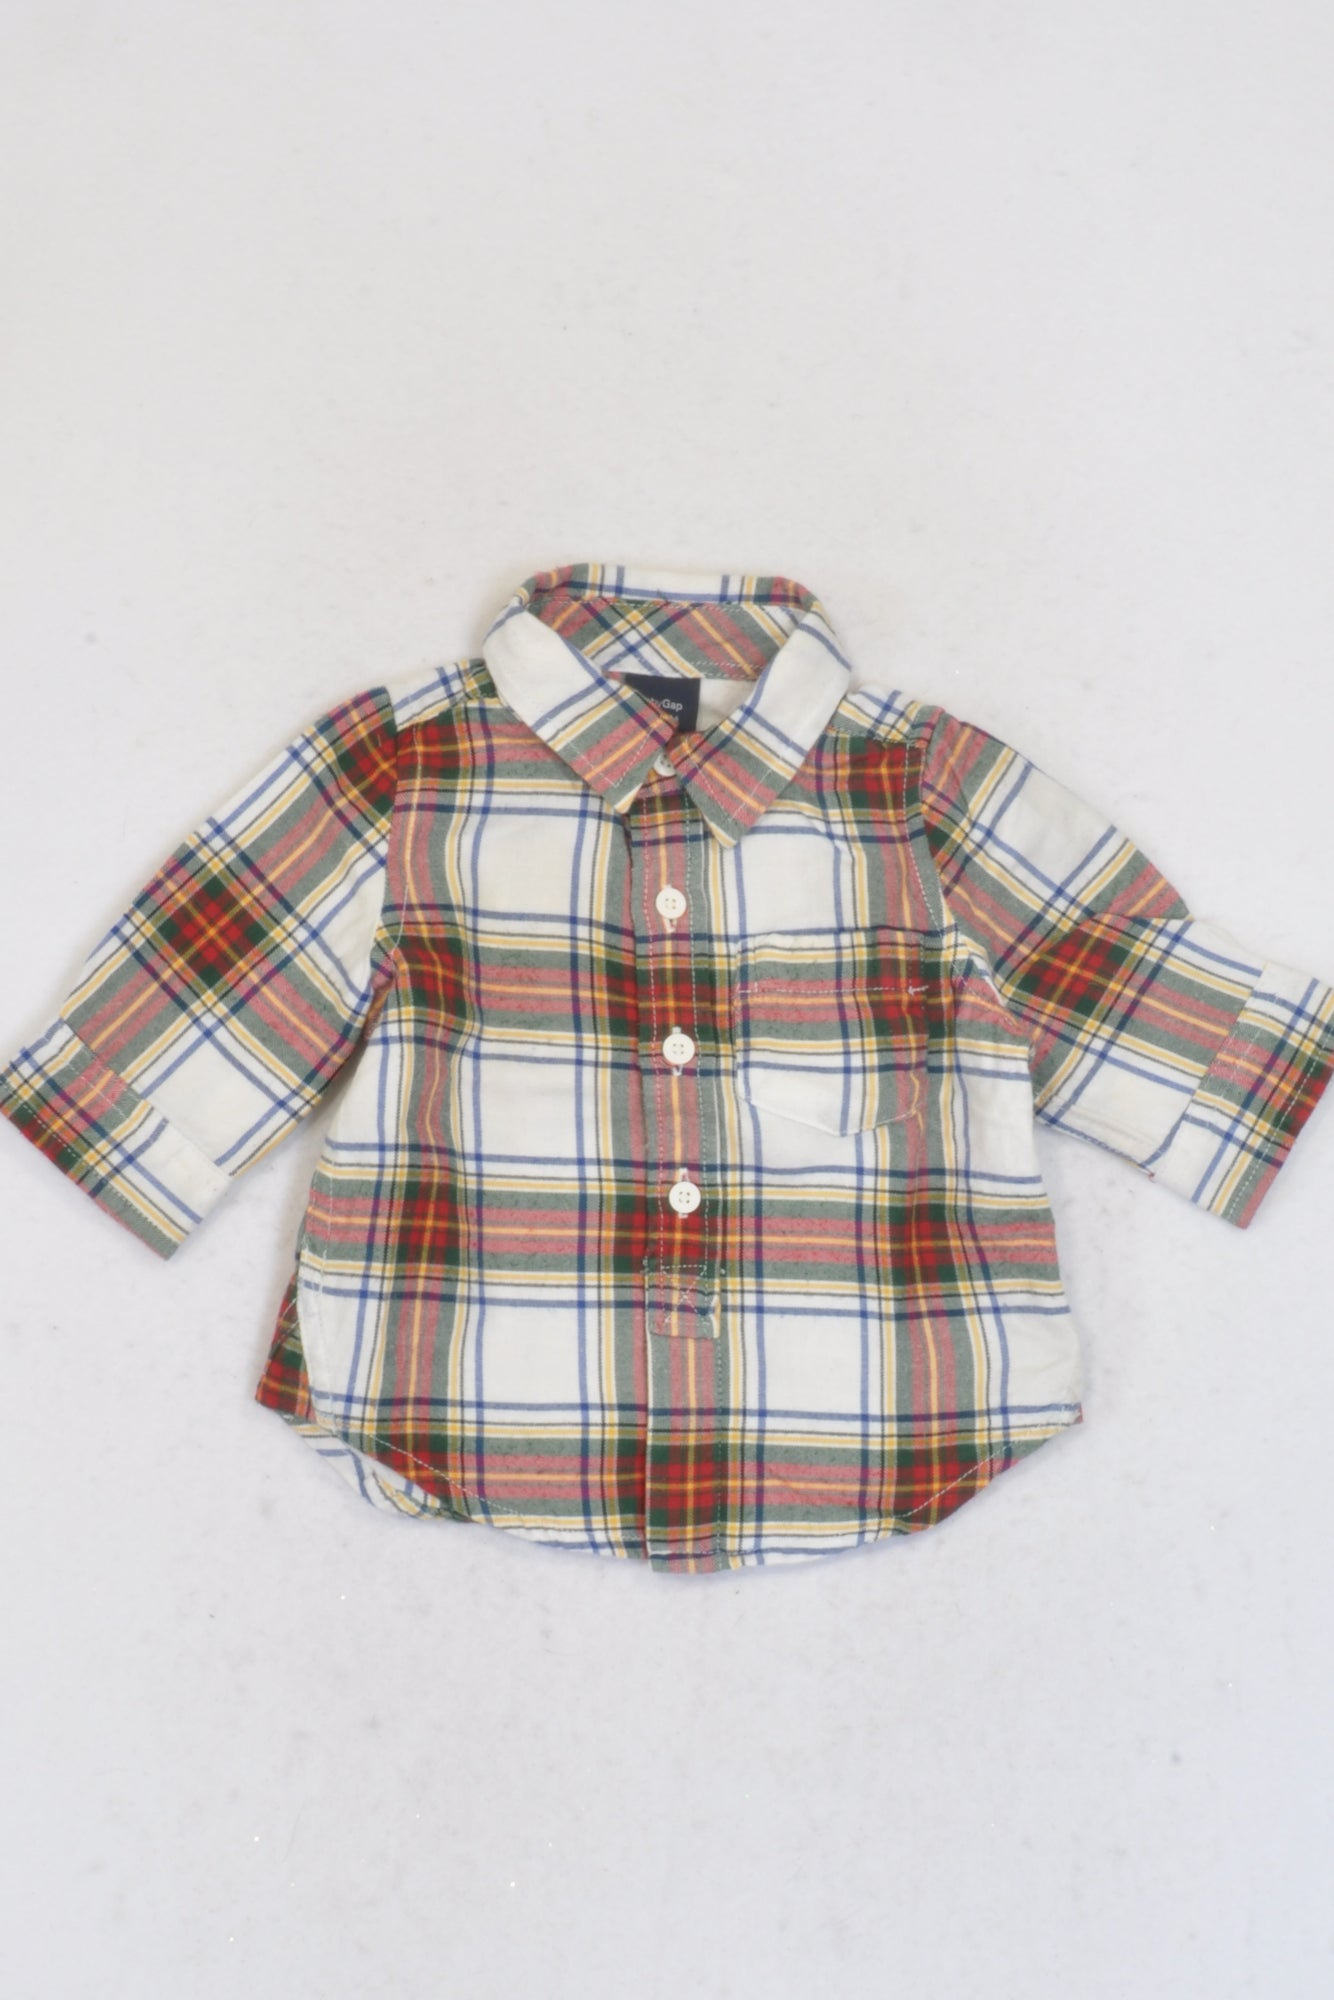 Gap Multi-Colored Plaid Shirt Boys 0-3 months